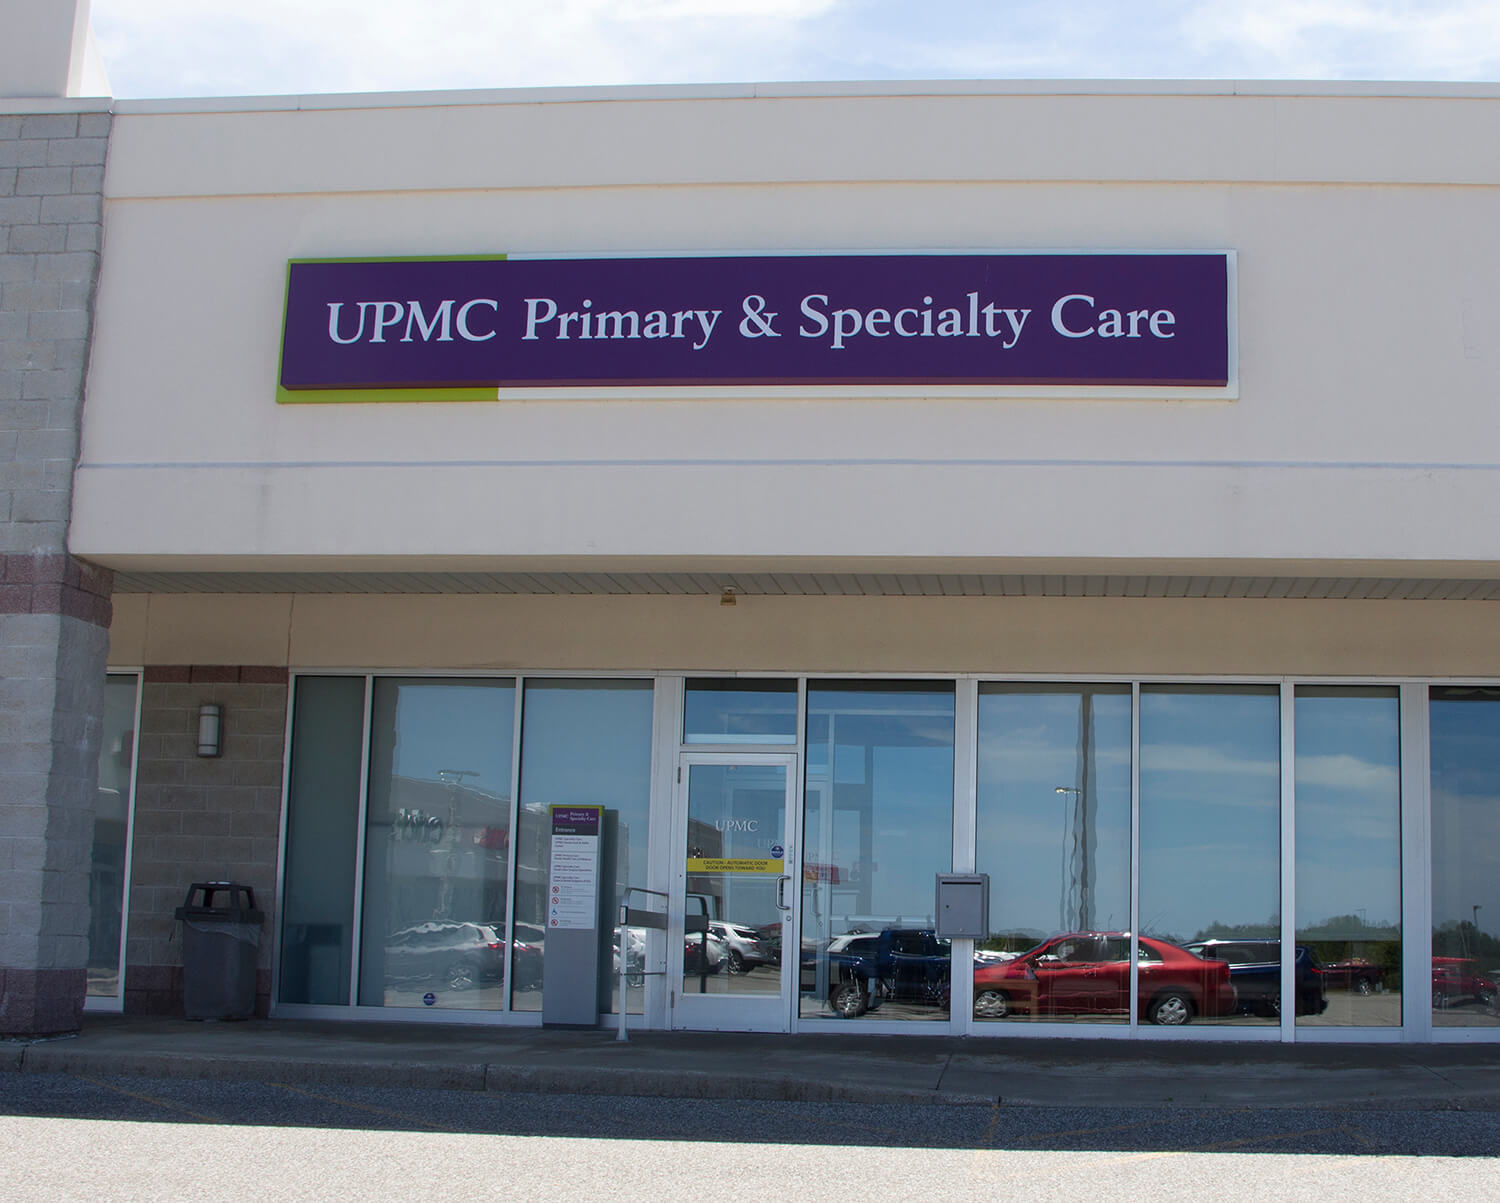 UPMC Primary and Specialty Care